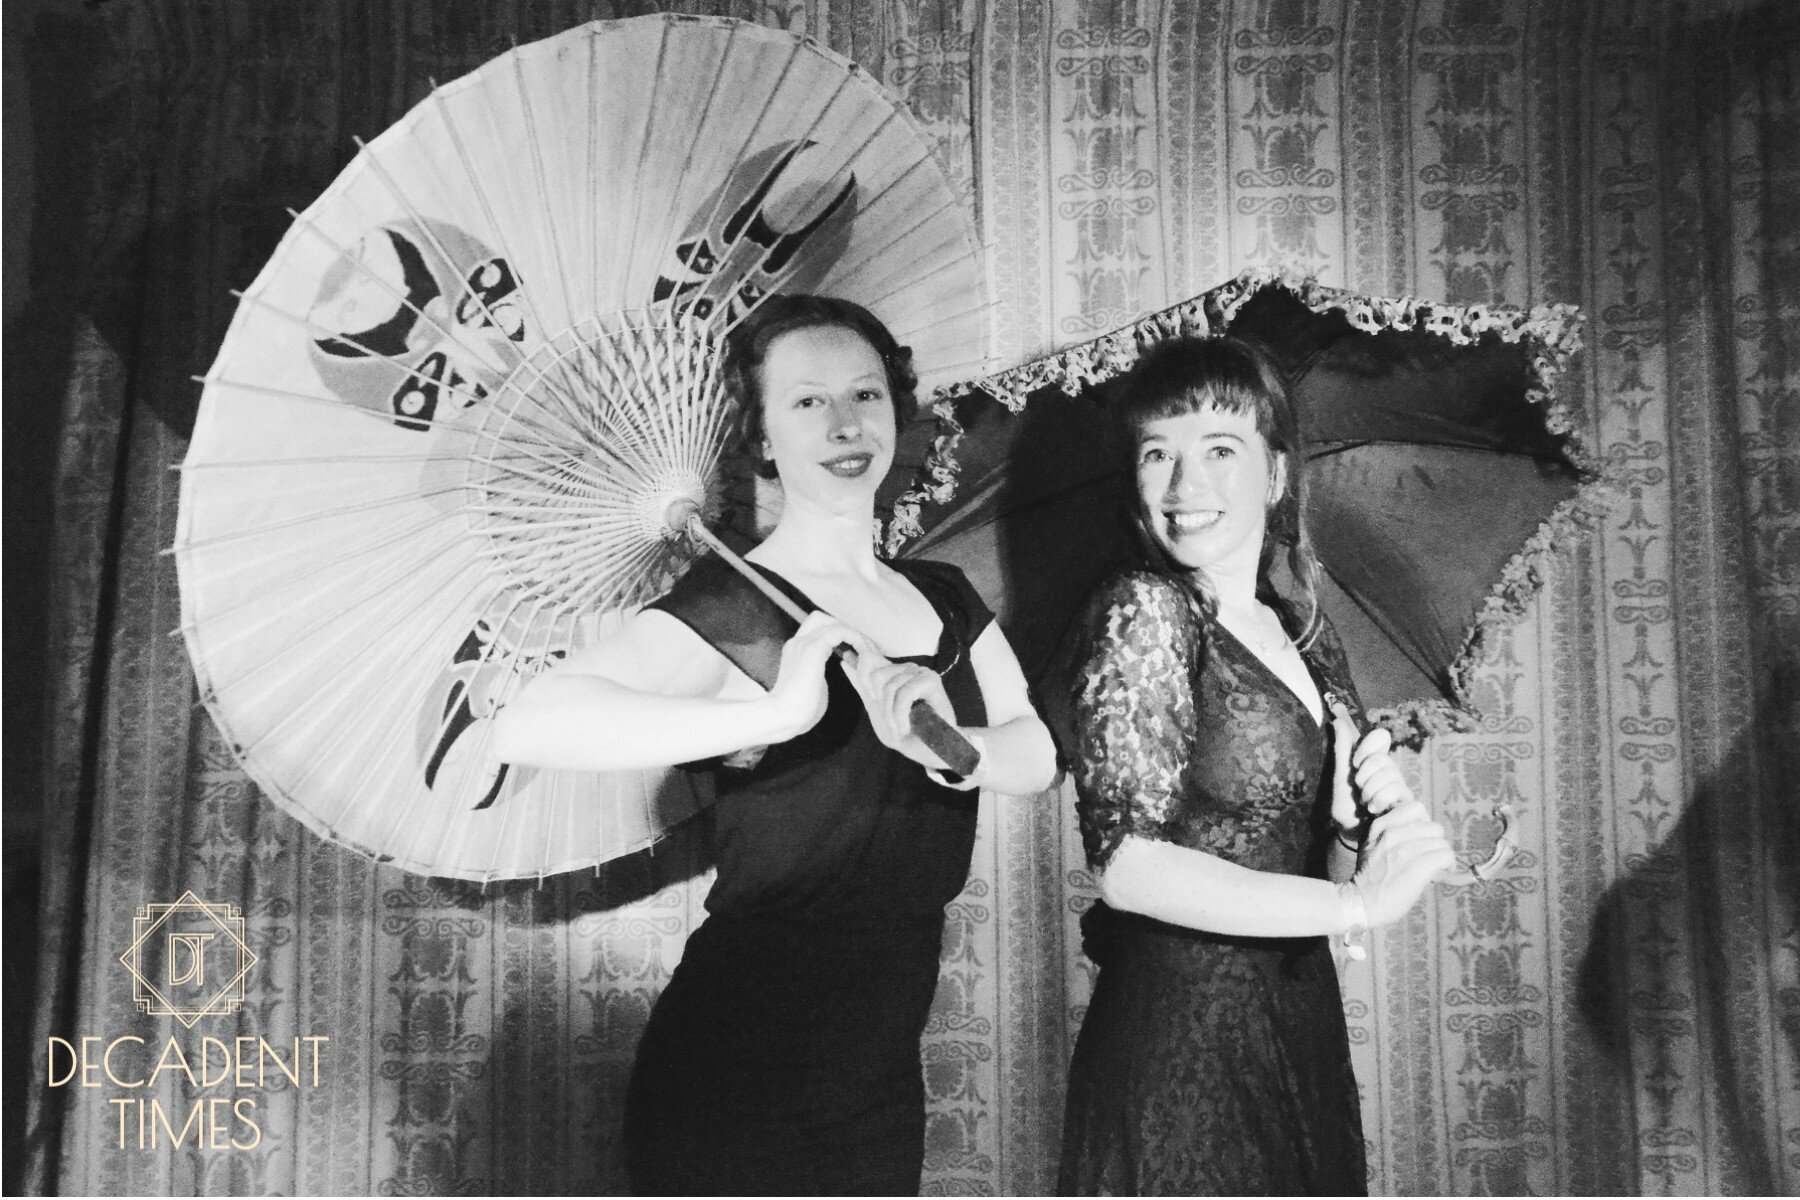 Vintage Photo Booth 1920s Backdrop.jpg